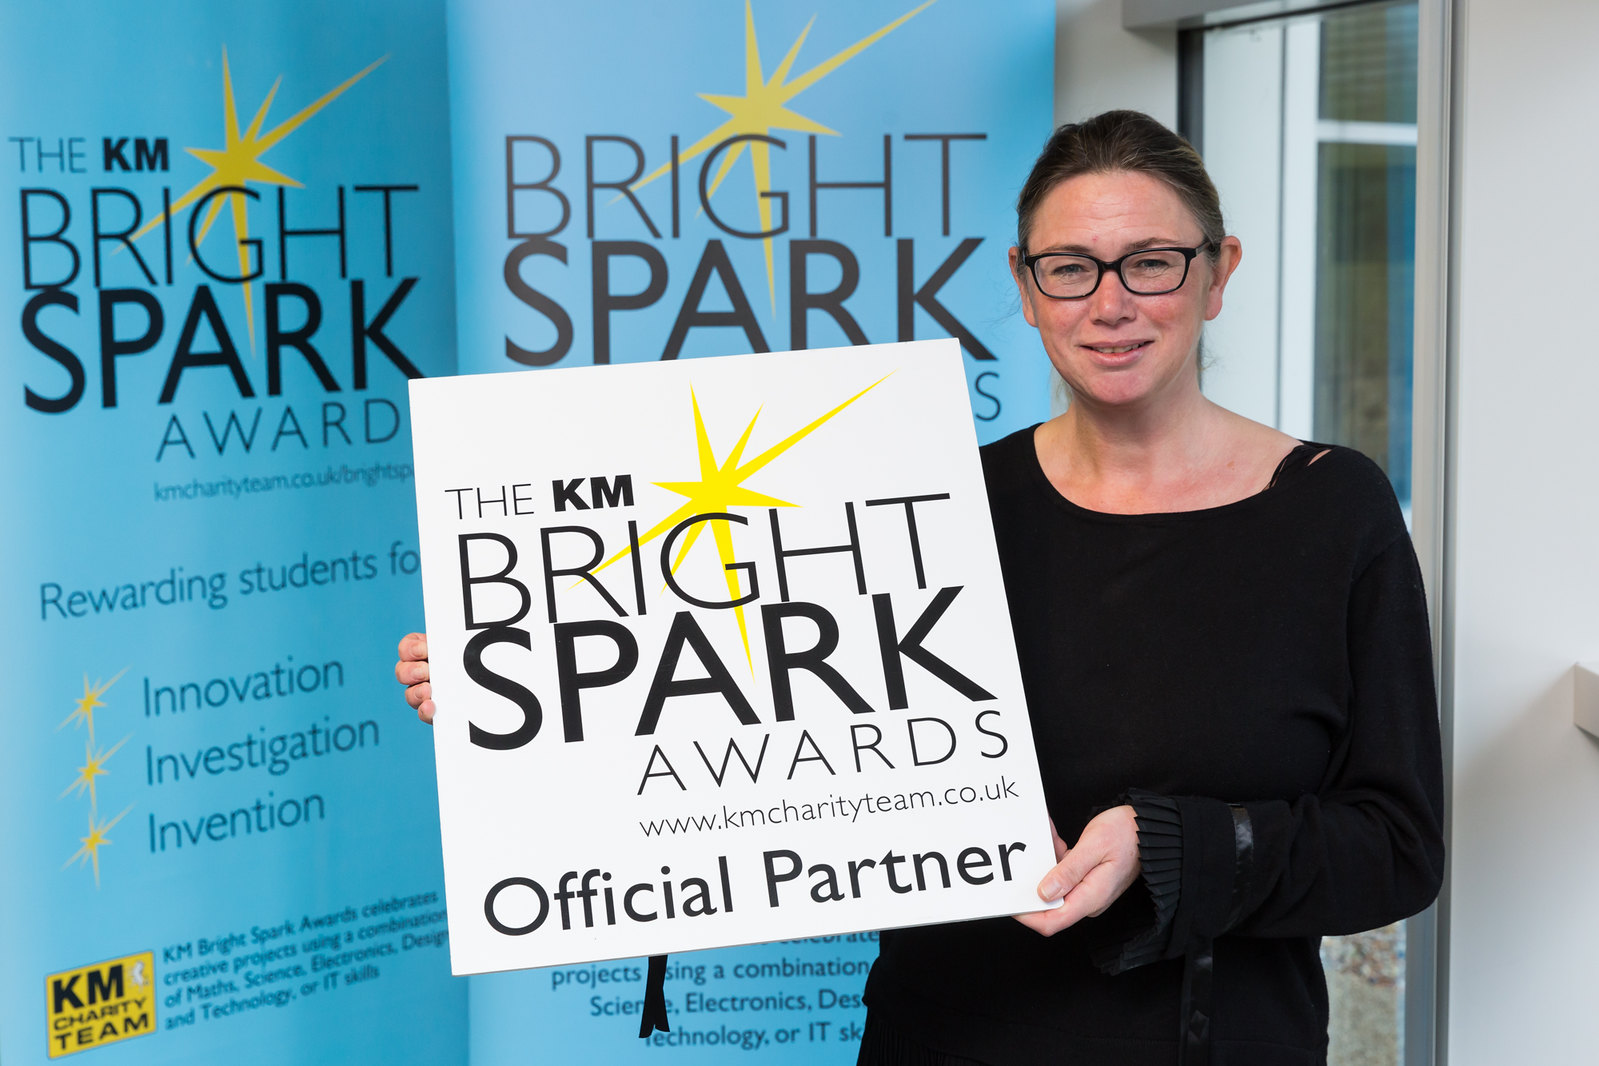 Bright Spark Awards 2020 launch